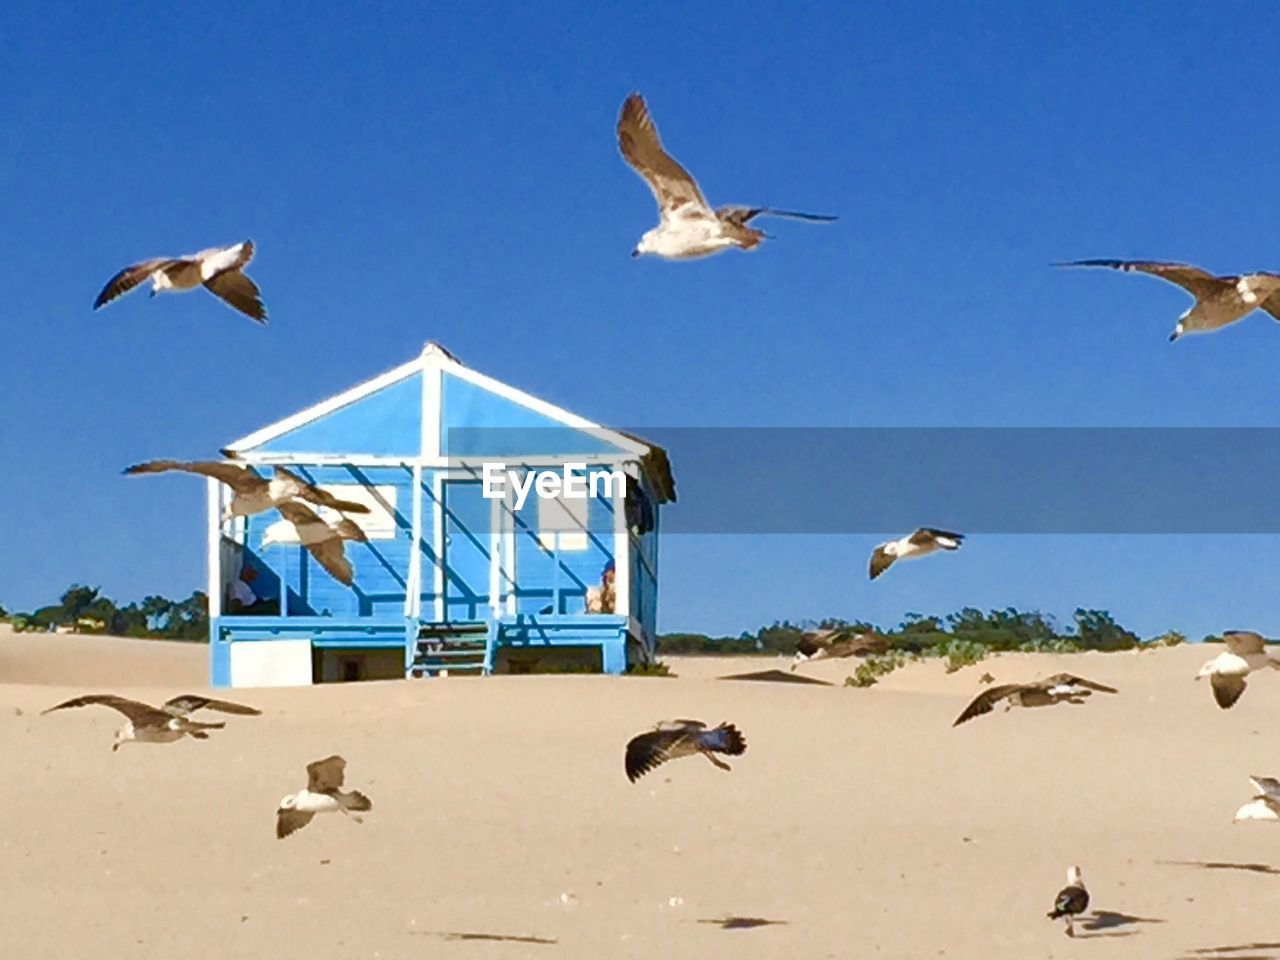 animal themes, sand, beach, flying, animals in the wild, nature, day, bird, outdoors, clear sky, mid-air, seagull, spread wings, sunlight, no people, animal wildlife, large group of animals, blue, sky, scenics, sea, beauty in nature, mammal